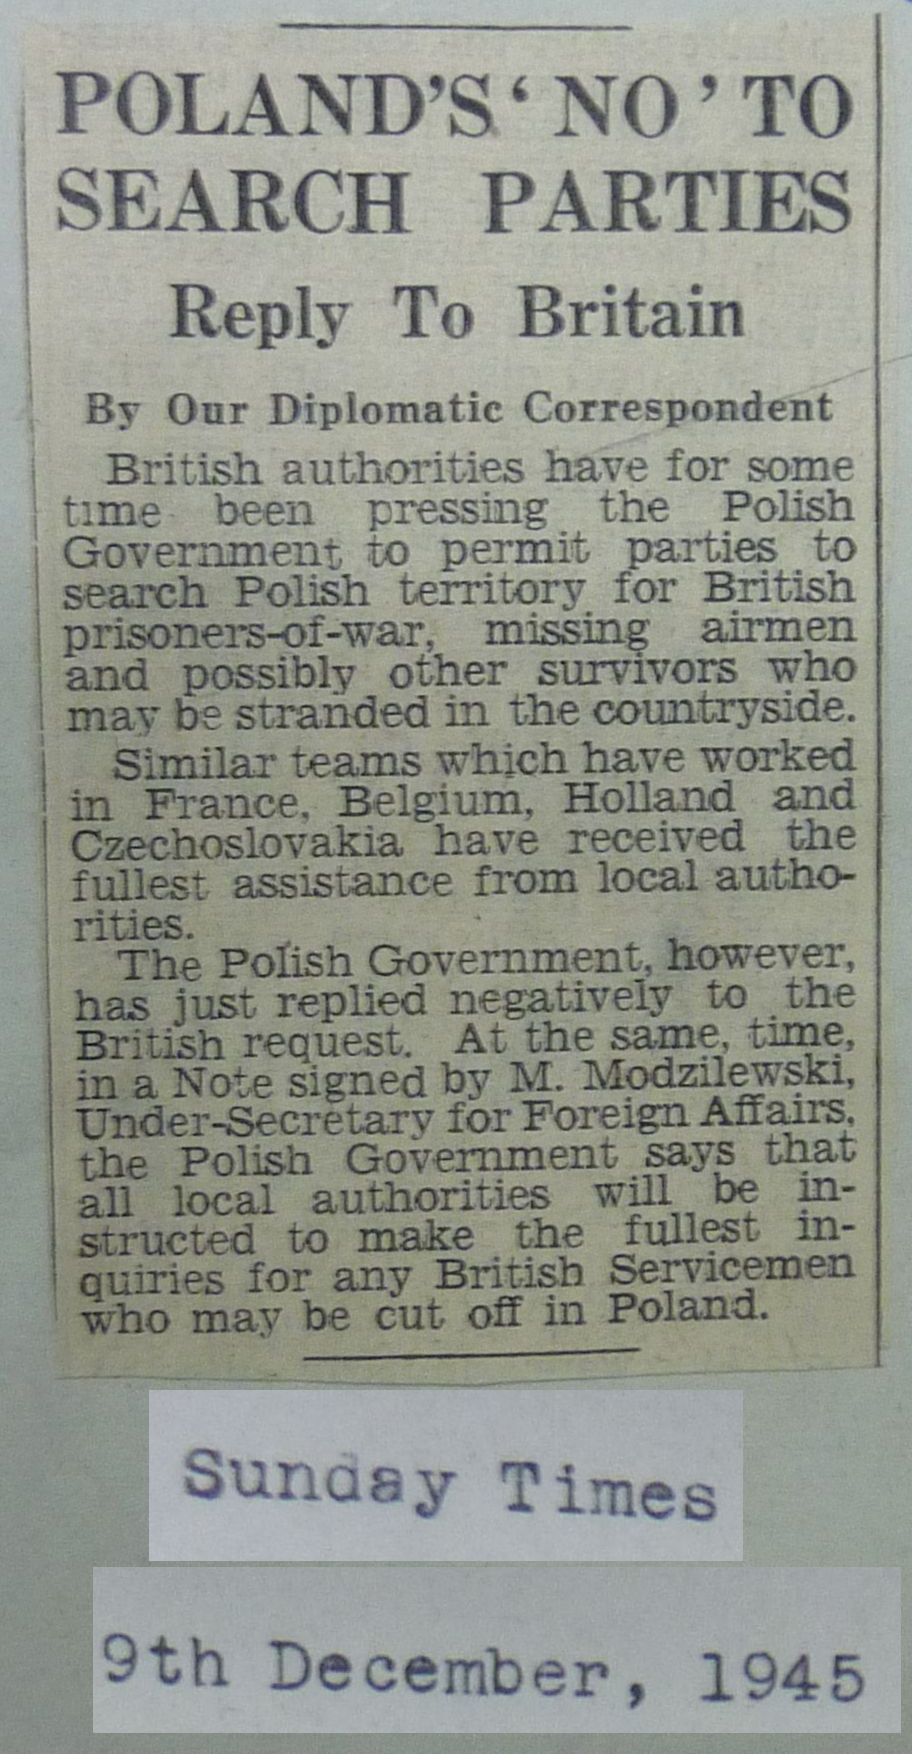 Image of Sunday Dec 9 1945 News Article re Poland Saying NO to British Search Teams Looking for missing POWs